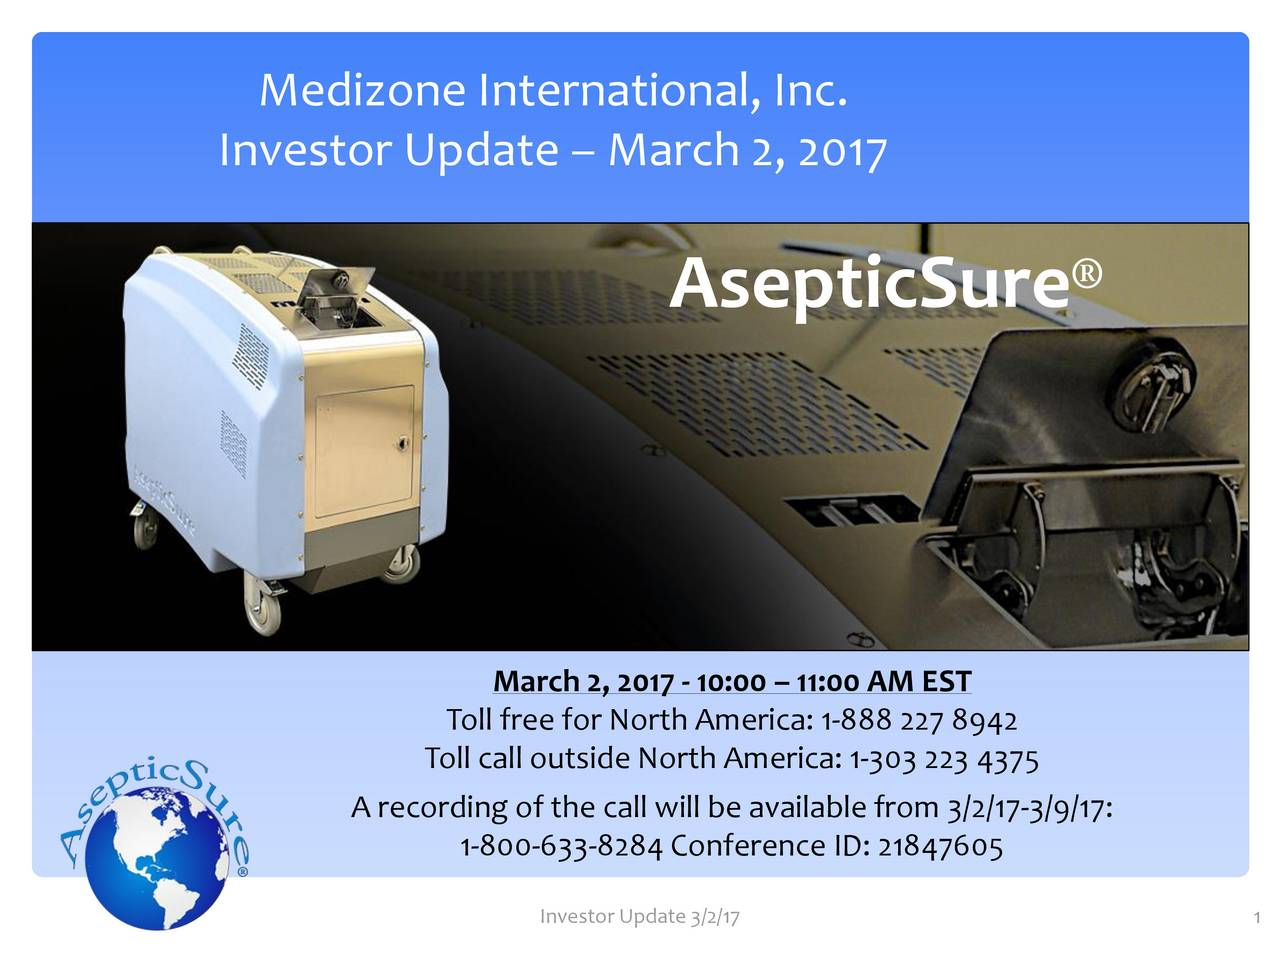 Investor Update  March 2, 2017 AsepticSure March 2, 2017 - 10:00  11:00 AM EST Toll free for North America: 1-888 227 8942 Toll call outside North America: 1-303 223 4375 A recording of the call will be available from 3/2/17-3/9/17: 1-800-633-8284Conference ID: 21847605 Investor Update 3/2/17 1